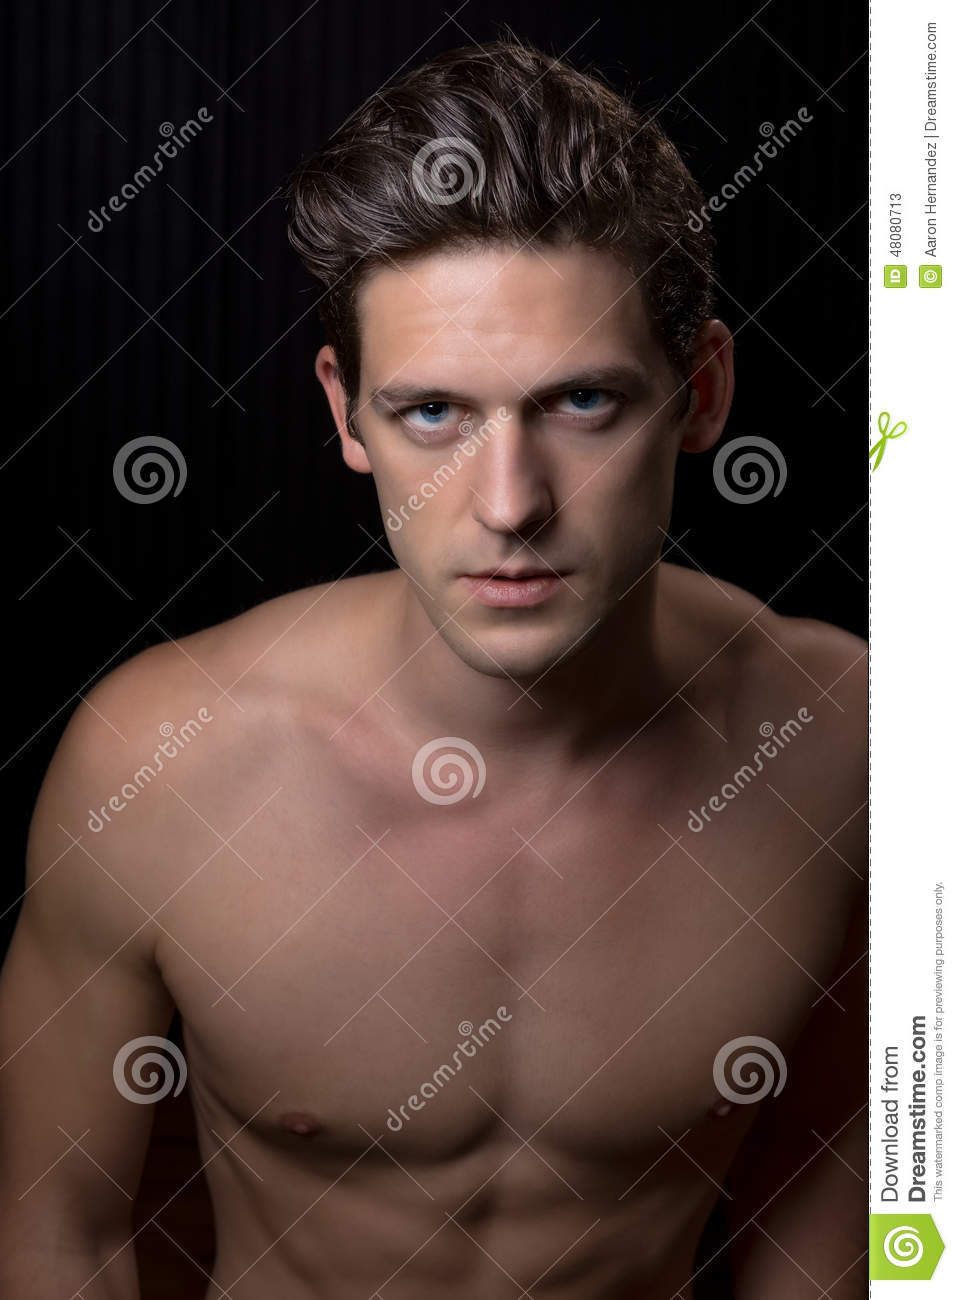 Toned Fit Shirtless Young Man Stock Image Image Of Handsome